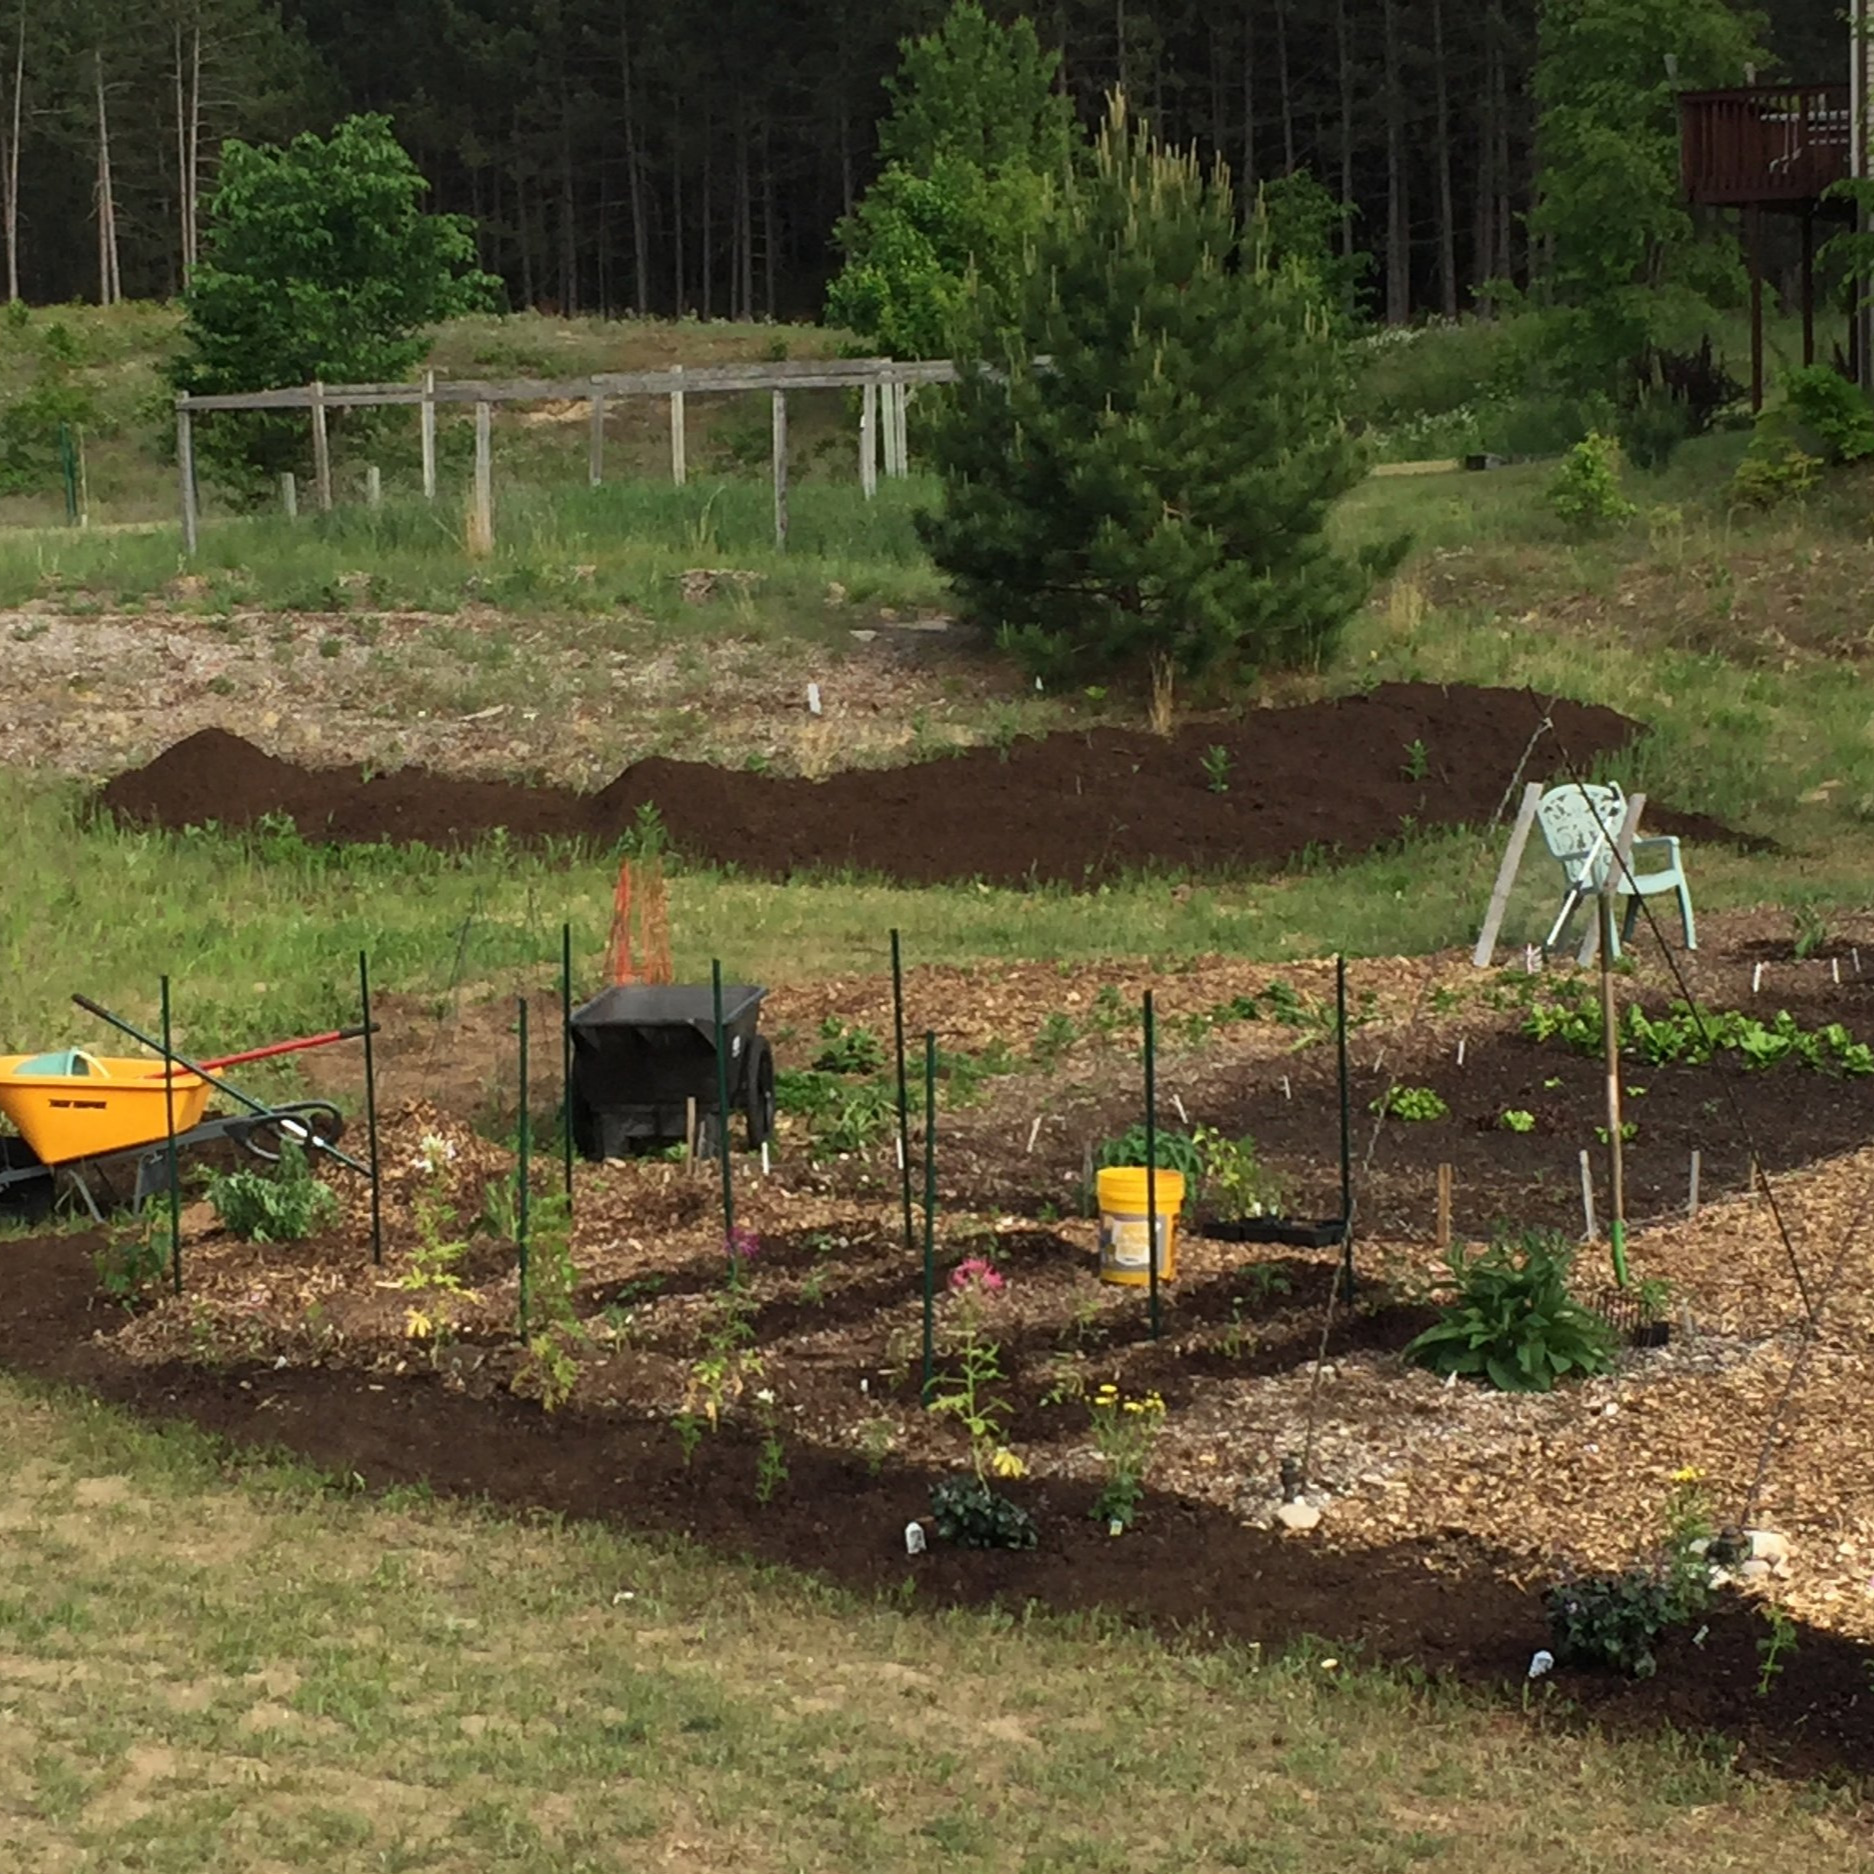 Planting and Tending the Gardens - Help us plant and tend our vegetable and flower gardens!